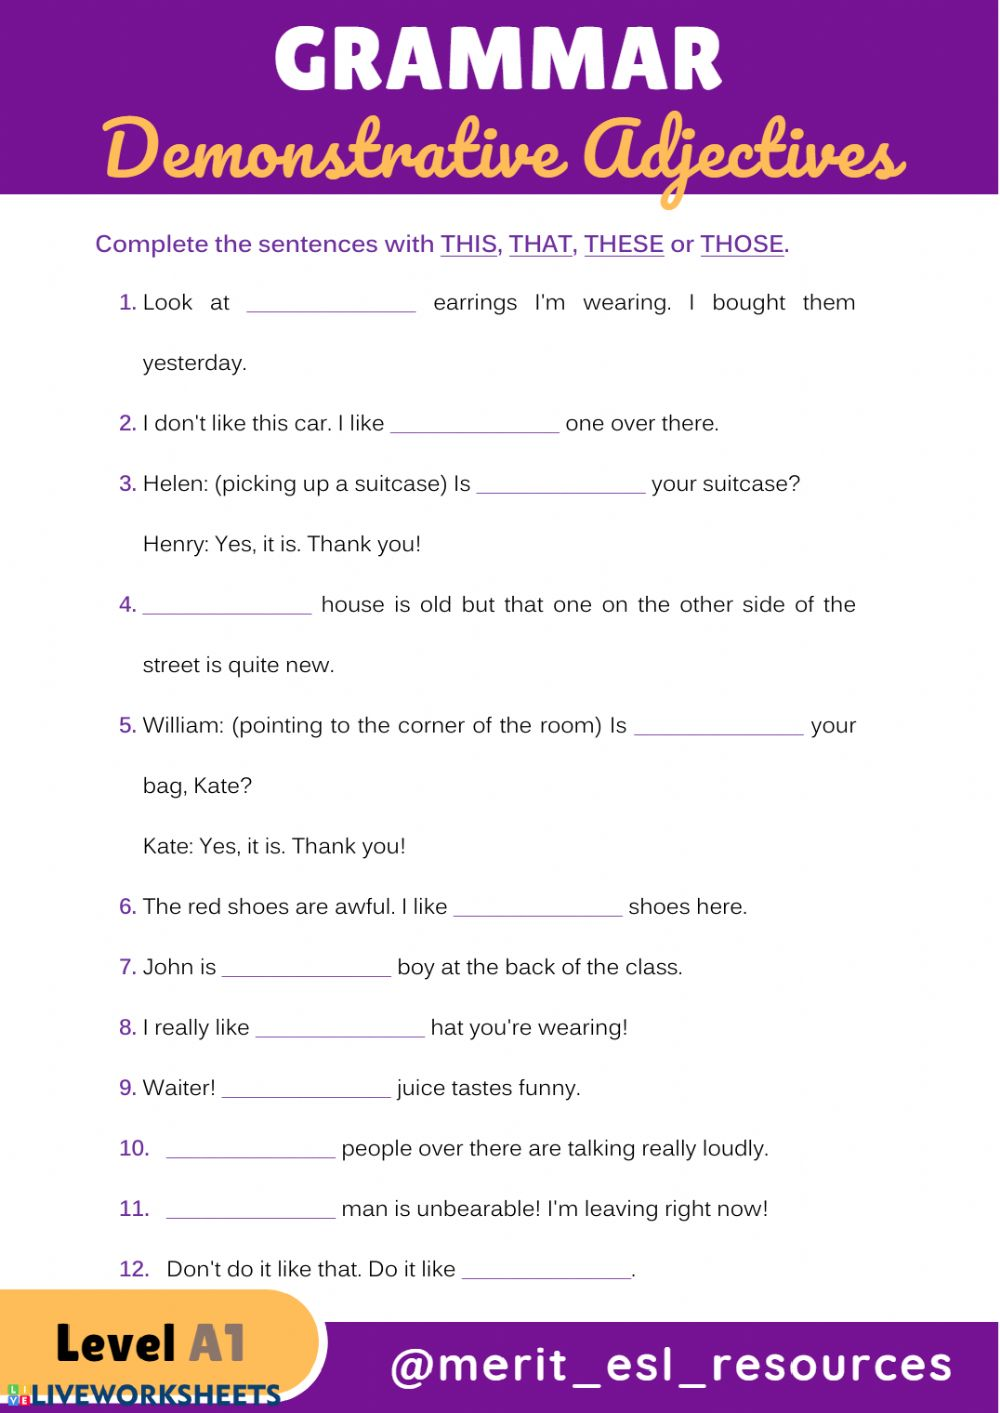 medium resolution of Demonstrative Adjectives worksheet